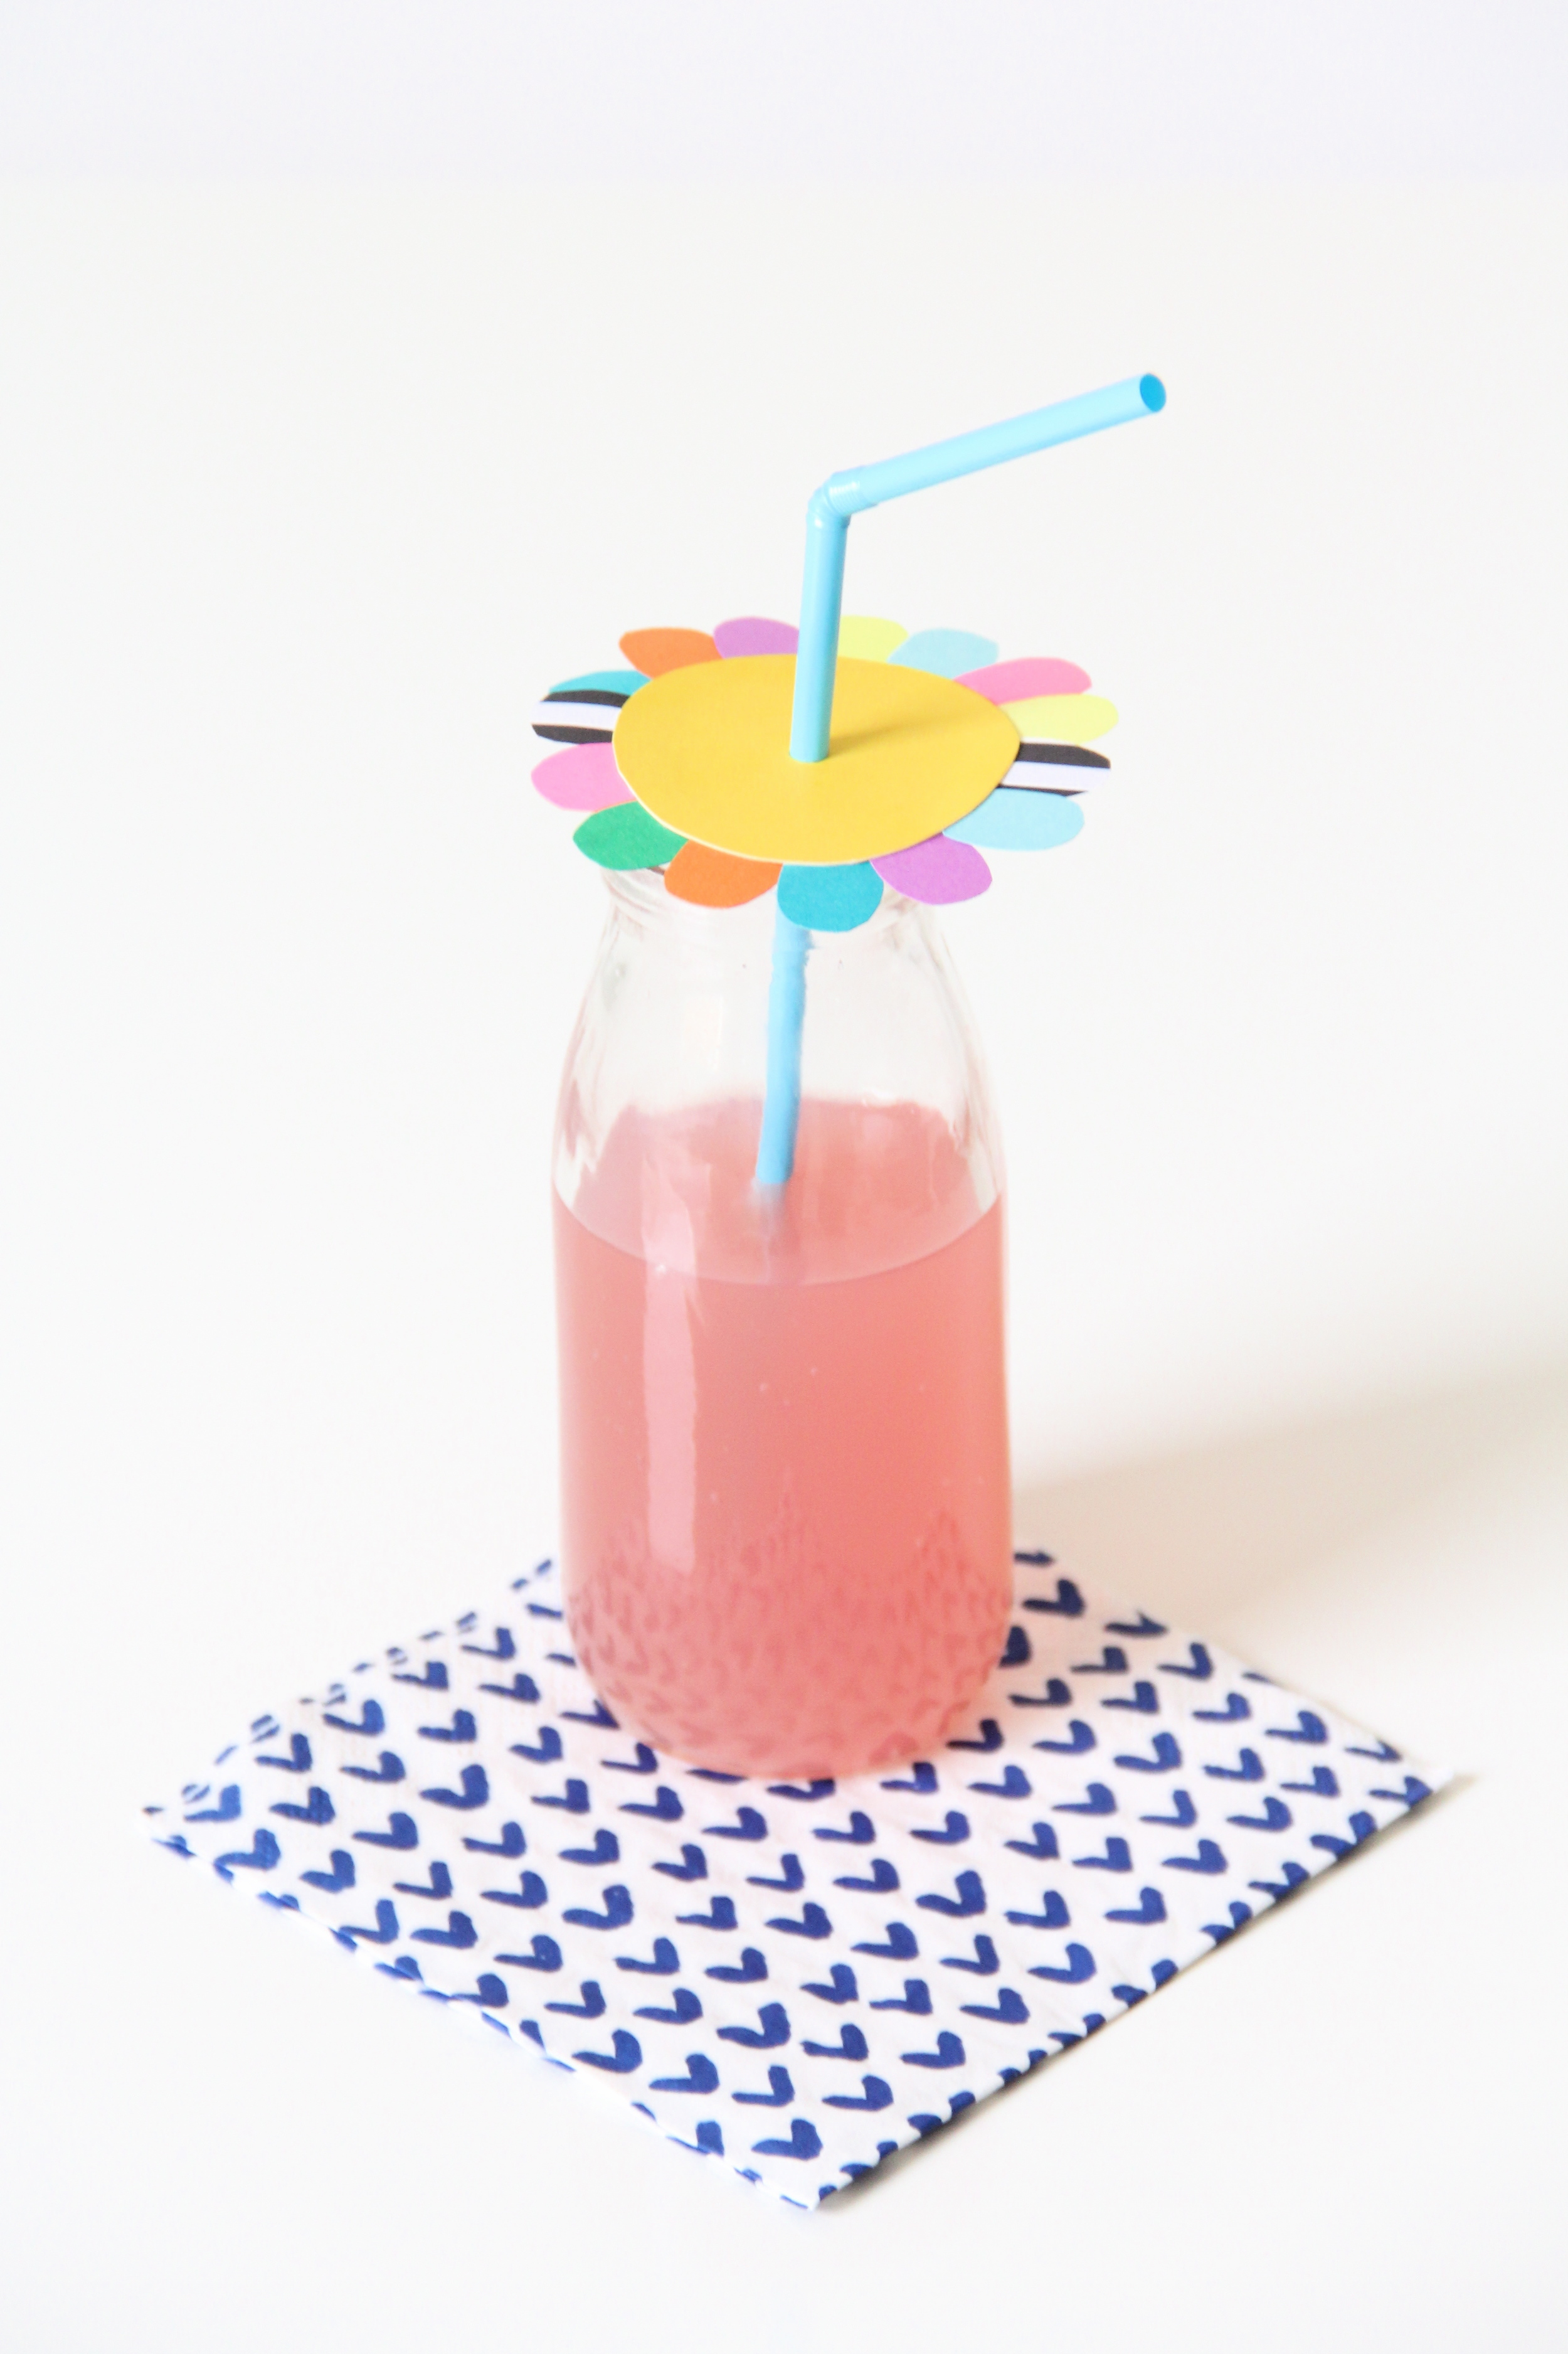 Flower party straw project in Good Housekeeping!